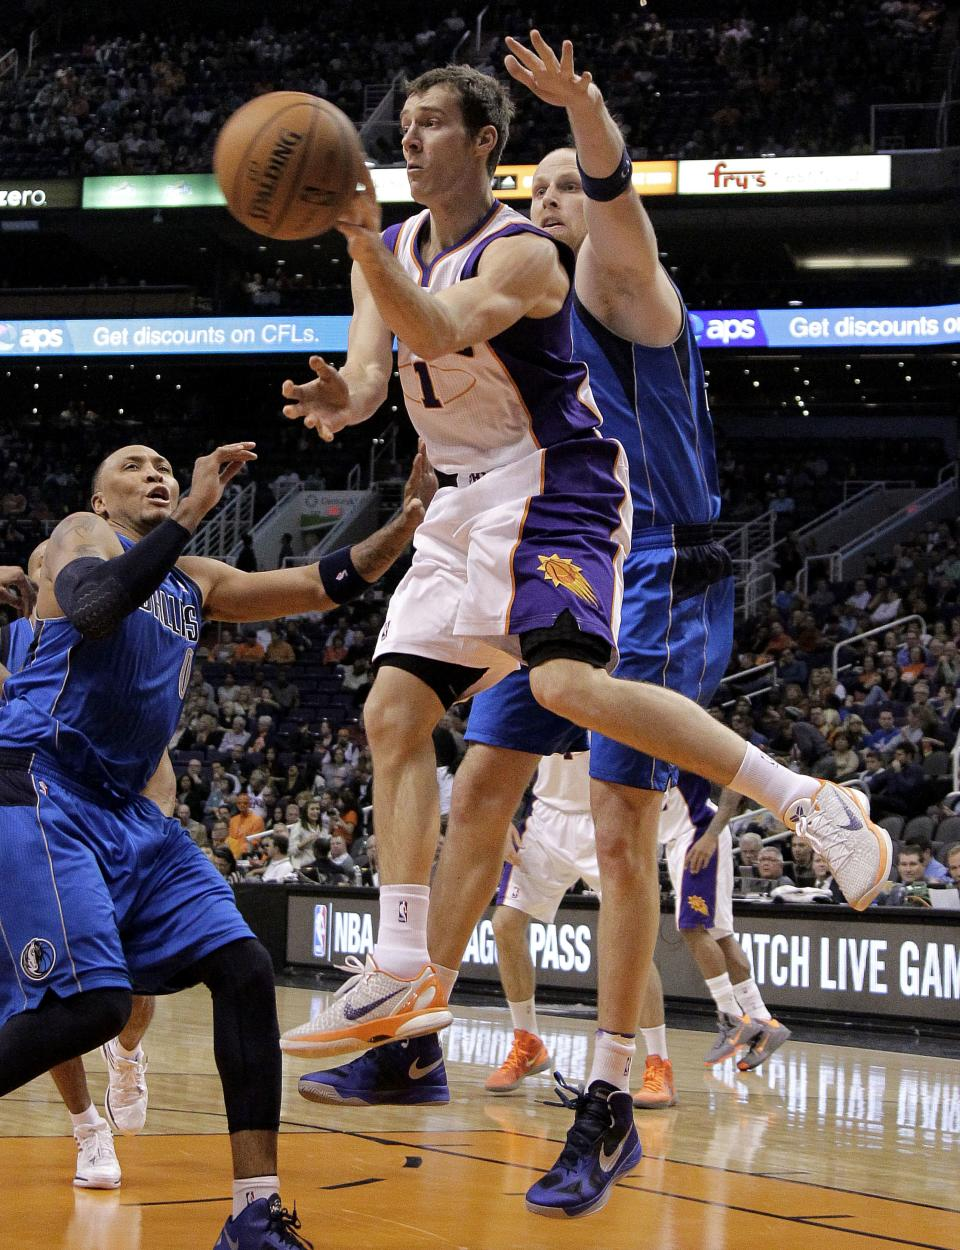 Phoenix Suns' Goran Dragic (1), of Slovenia, passes around the reach of Dallas Mavericks' Chris Kaman during the second half of an NBA basketball game, Thursday, Dec. 6, 2012, in Phoenix. (AP Photo/Matt York)